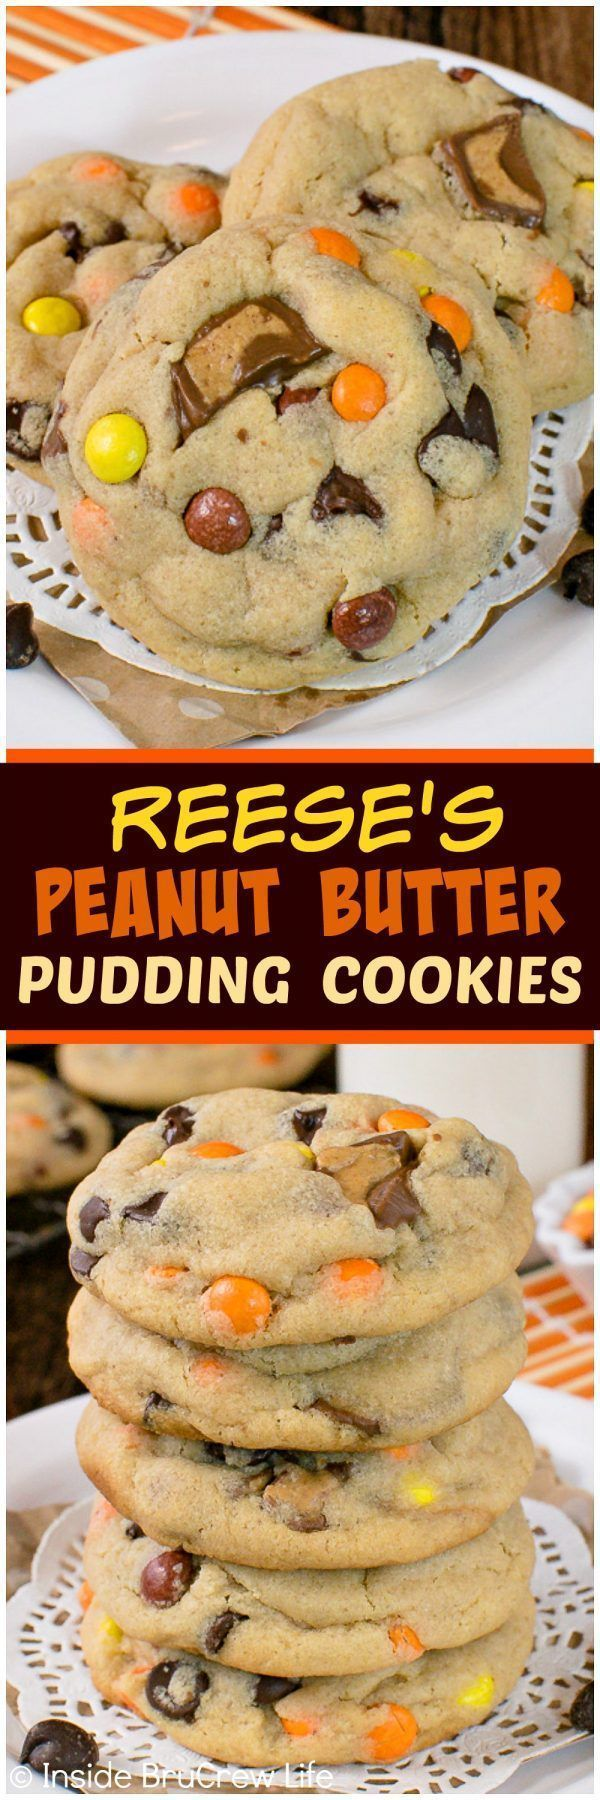 Reese's Peanut Butter Pudding Cookies - this soft and chewy cookie recipe is loaded with chocolate and candy!  Great dessert to fill the cookie jar with! (Baking Desserts Peanut Butter)